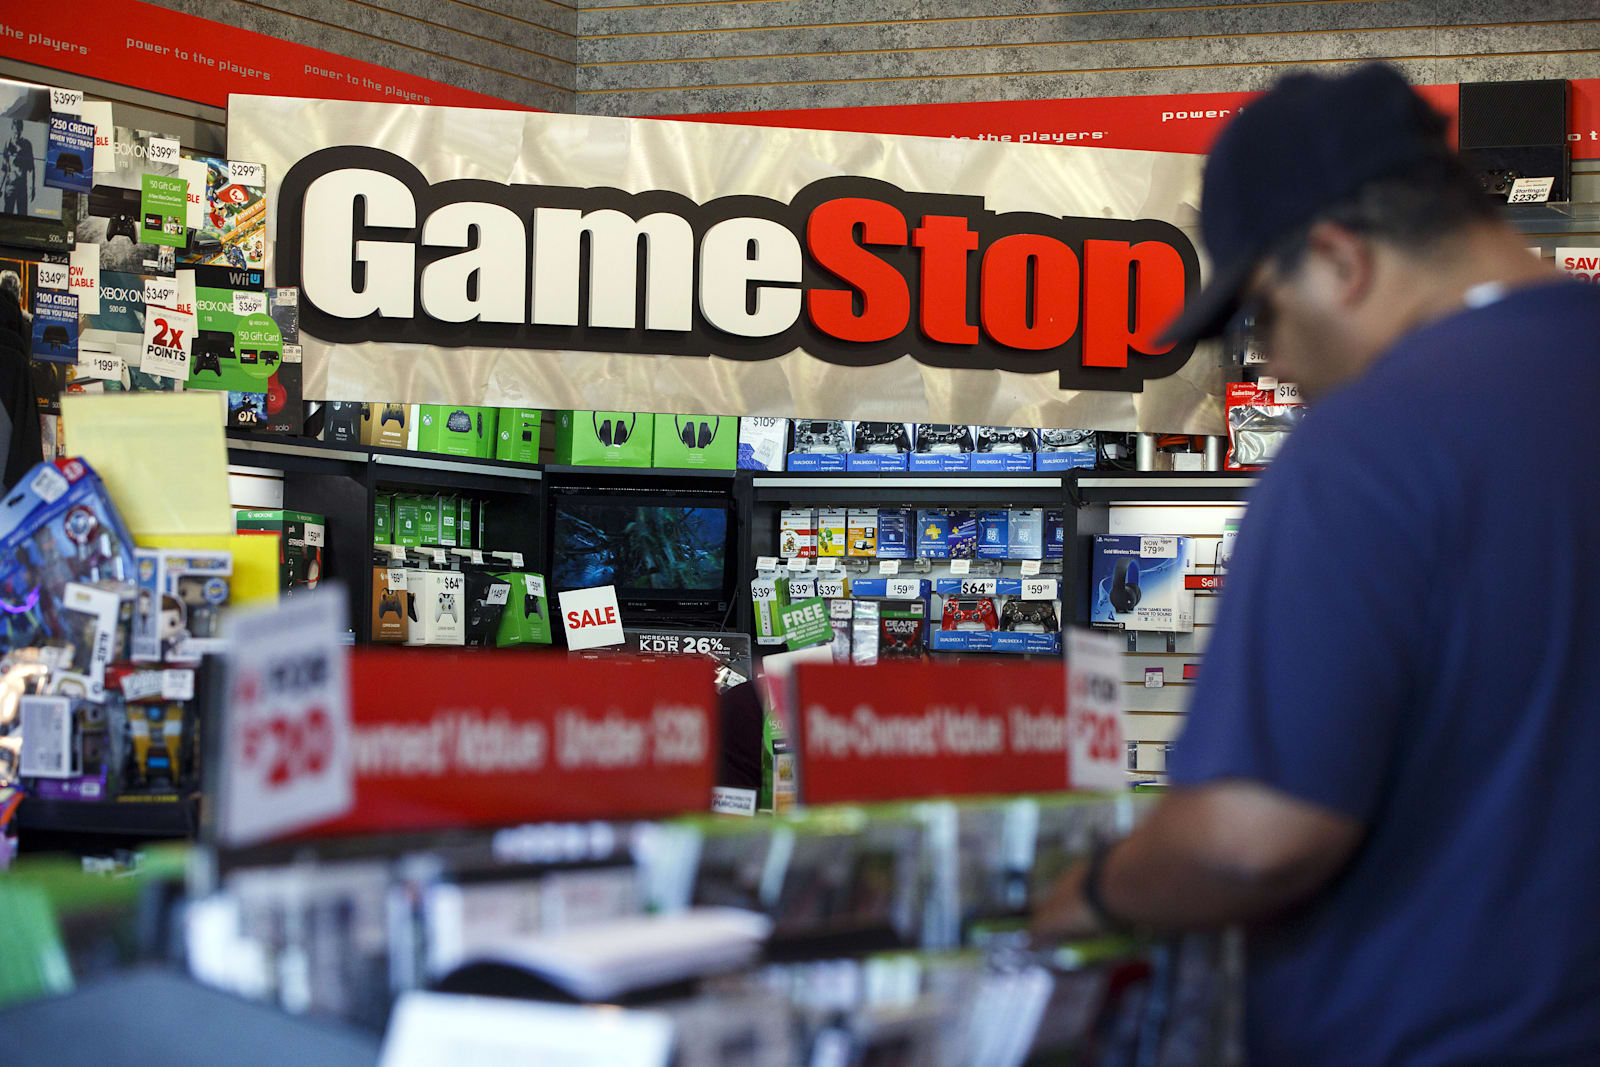 GameStop looks into a potentially serious credit card breach